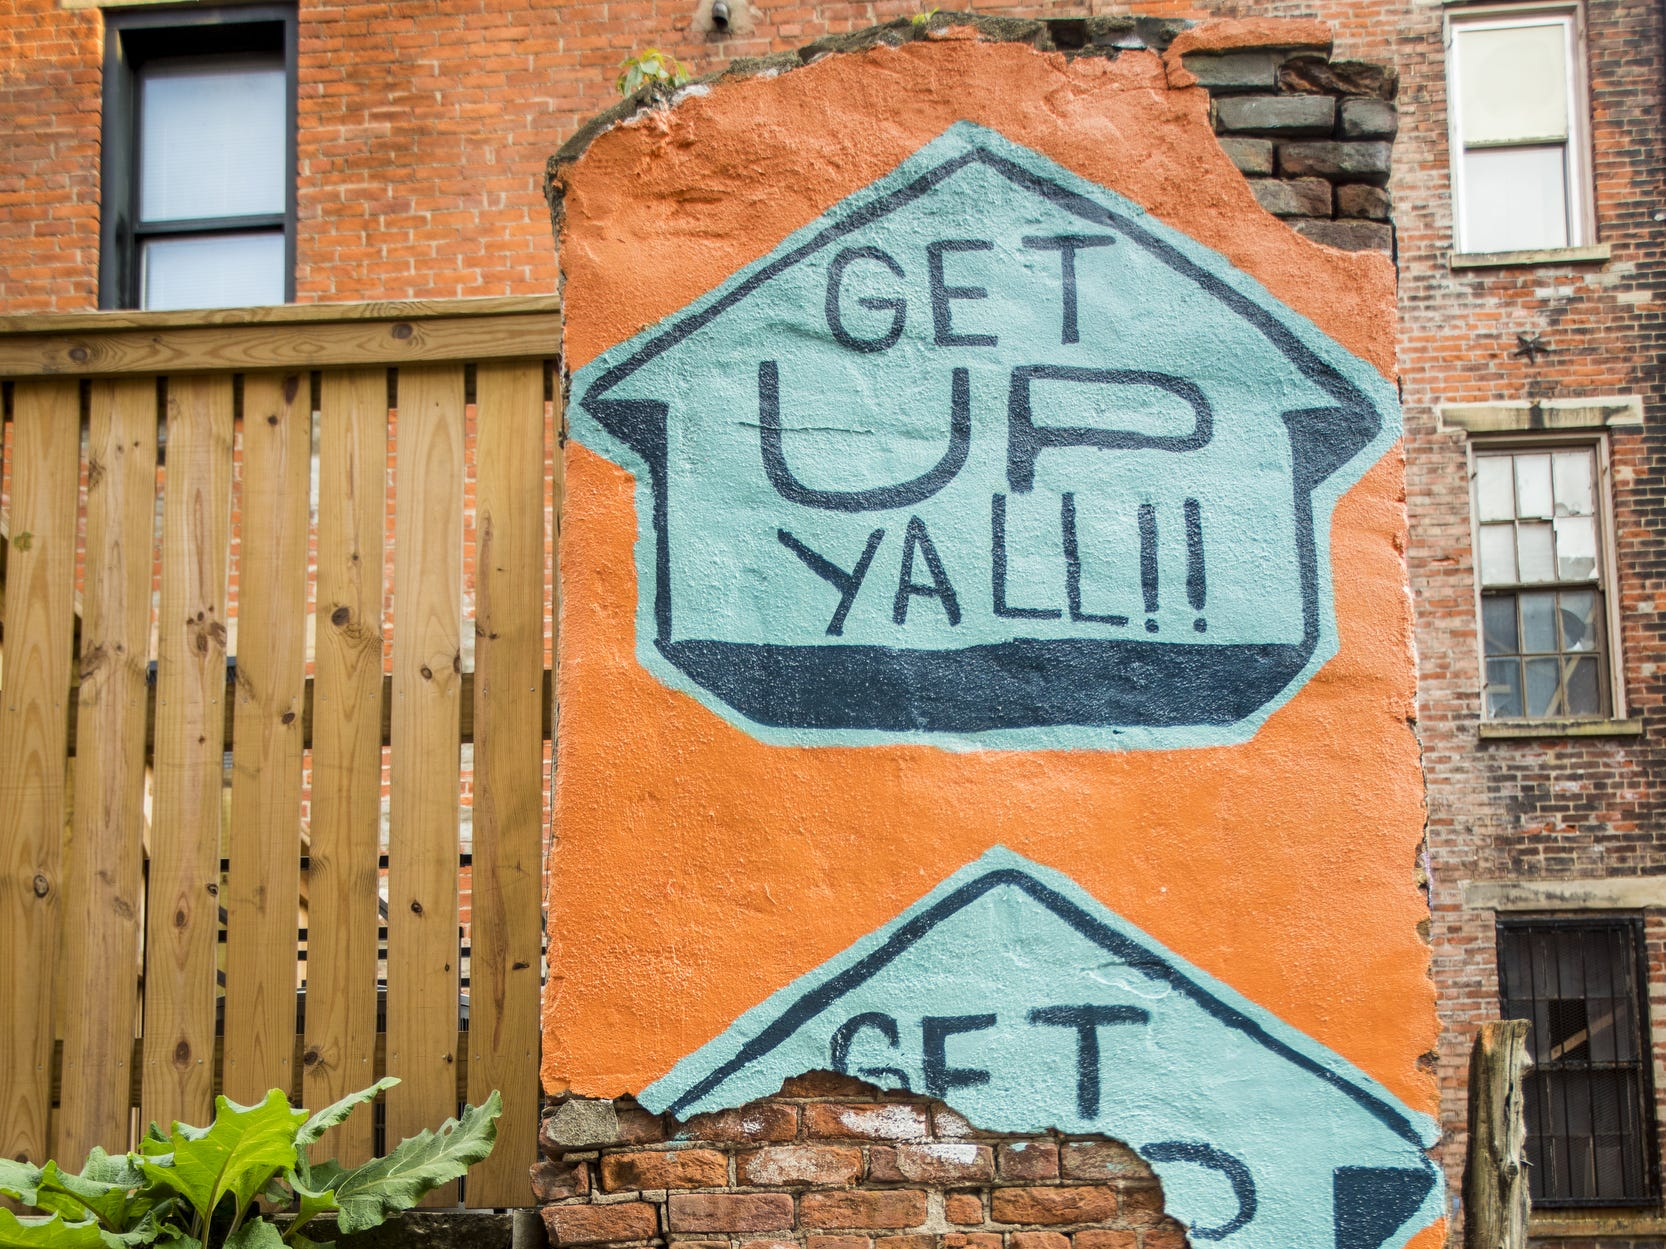 Wednesday, September 19, 2018: ÒGet up YALL!Ó designed by Leon Reid IV is featured in Bolivar Alley in Pendleton as part of New Lines Alleyway Murals: Phase II by ArtWorks.